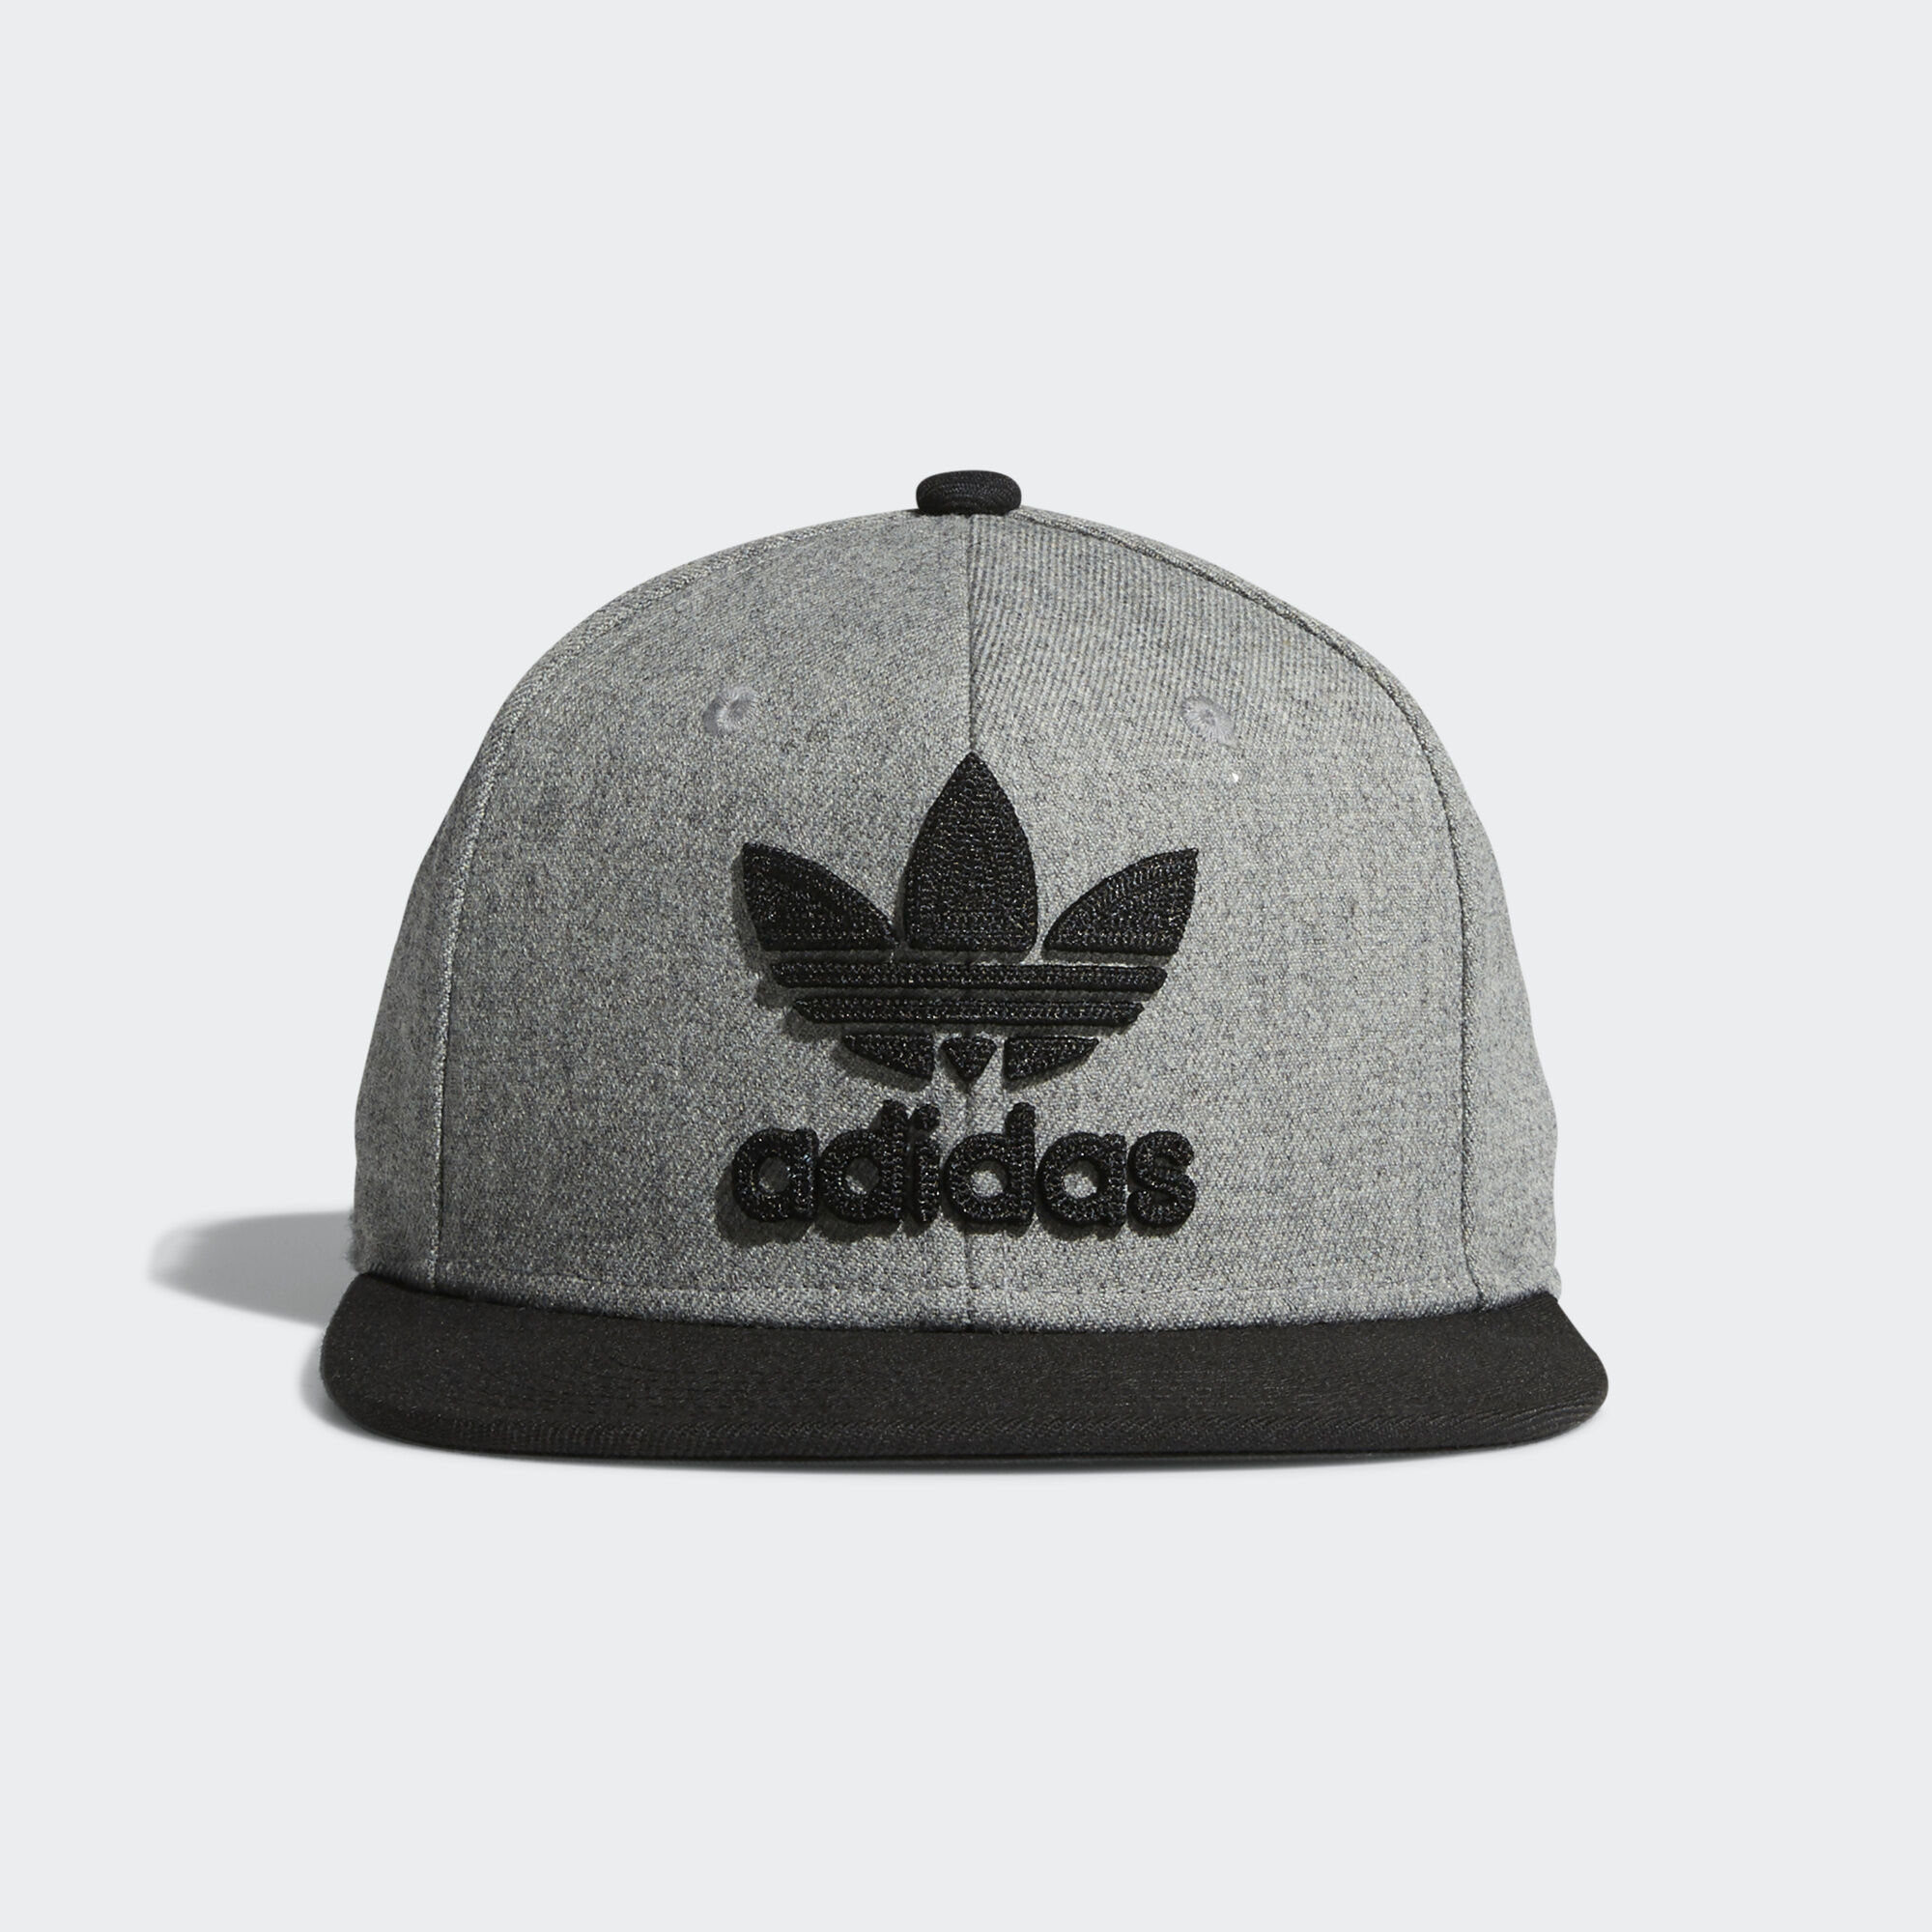 adidas cap gray custard. Black Bedroom Furniture Sets. Home Design Ideas